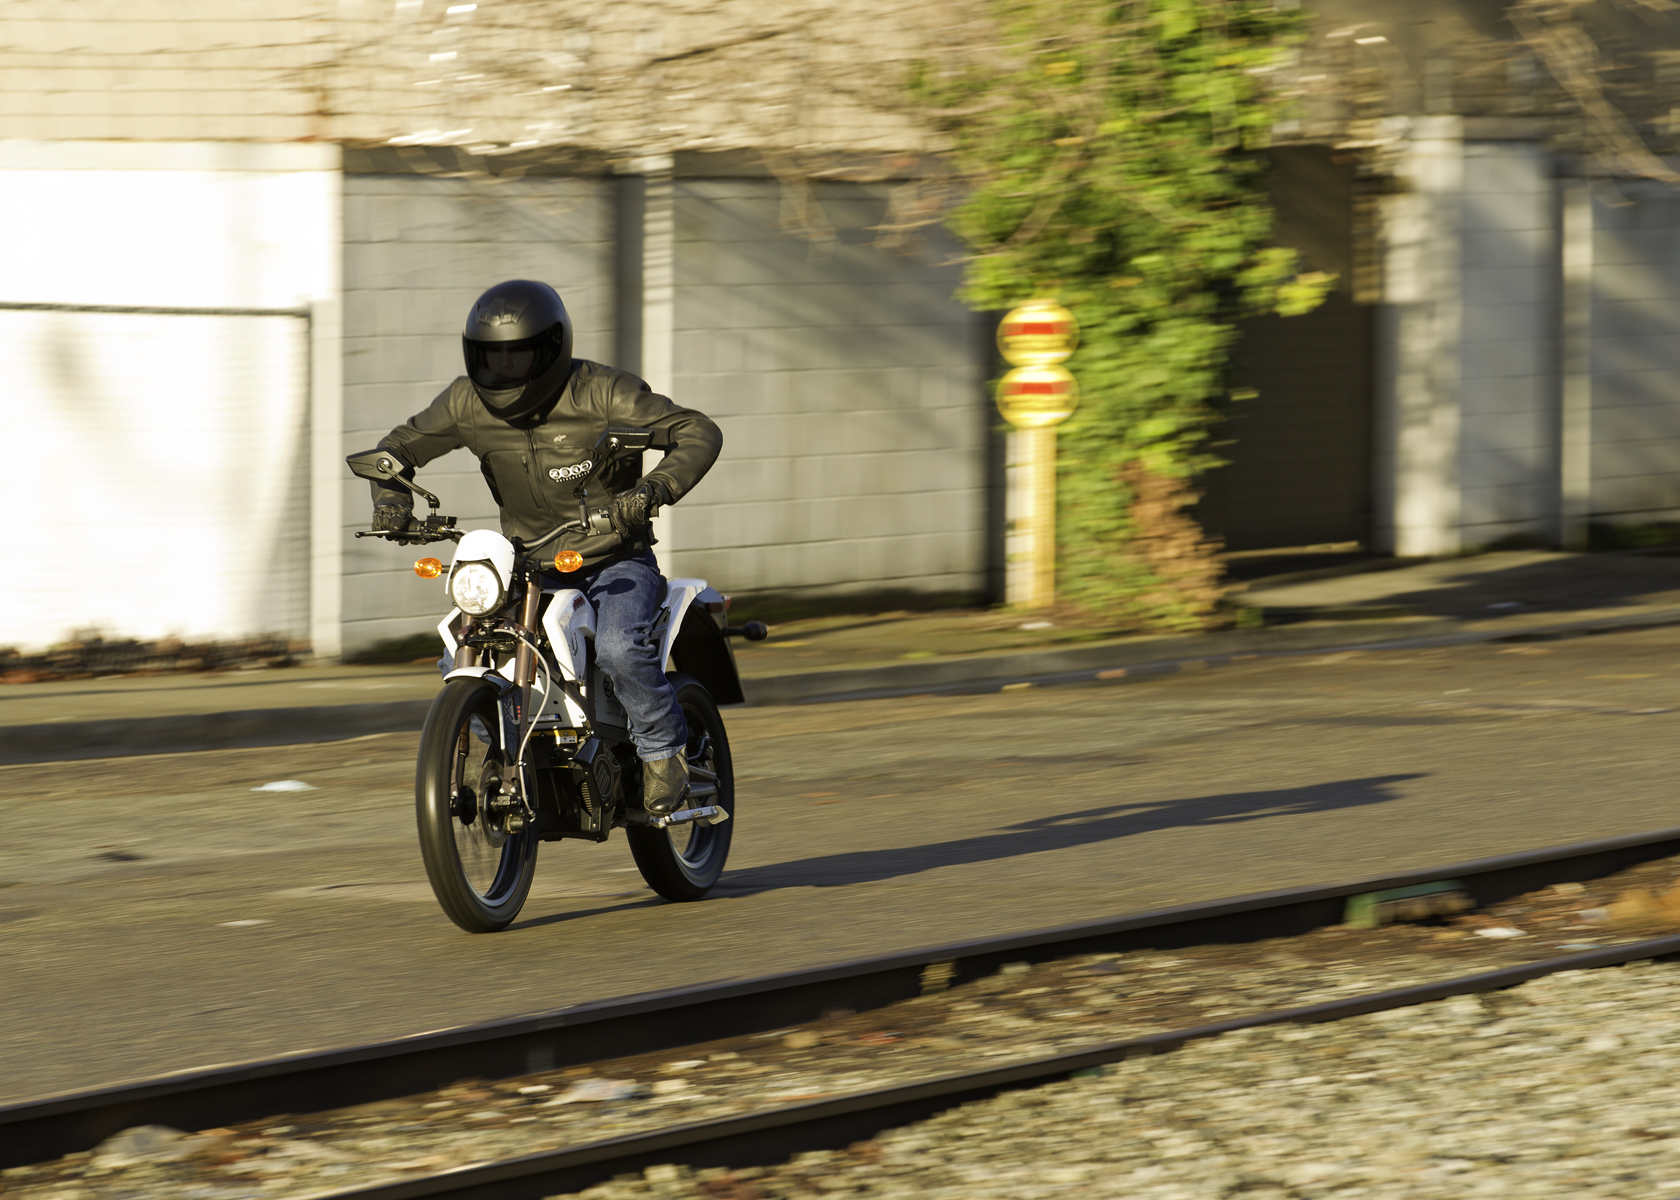 '.2011 Zero XU Electric Motorcycle: In the City, by Railroad Tracks.'